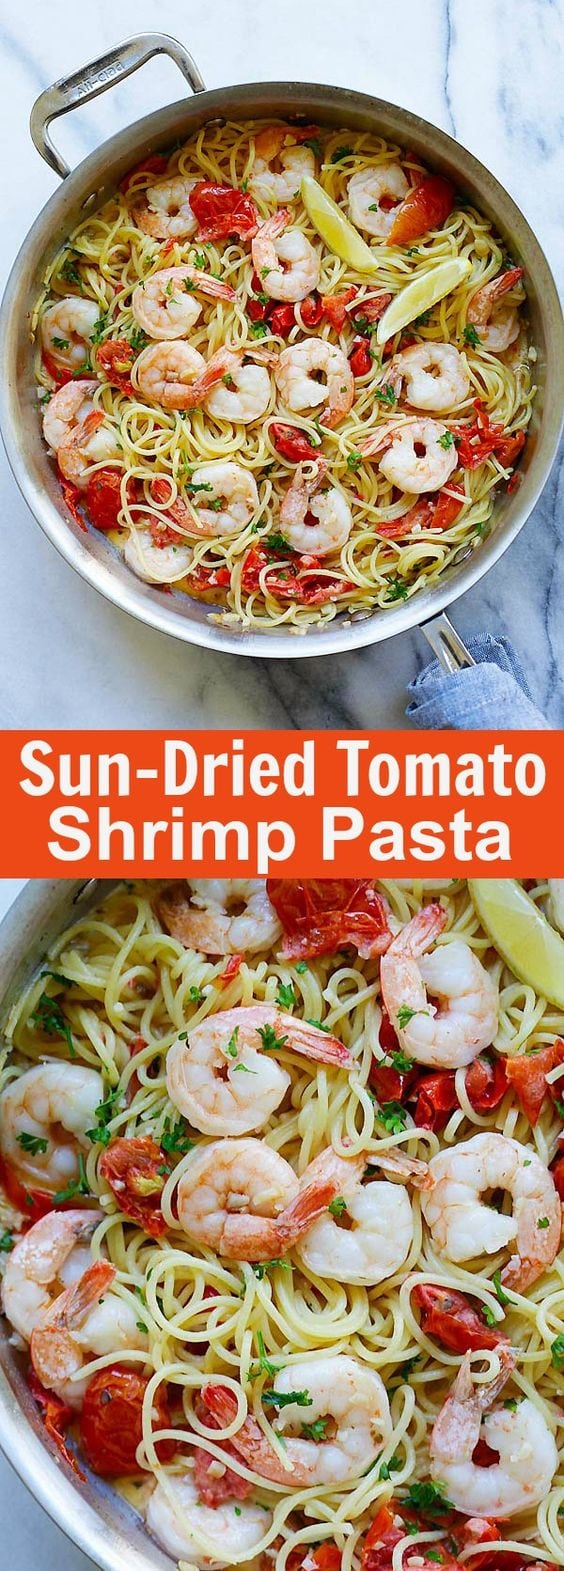 Creamy Shrimp and Sun-Dried Tomatoes Pasta – the best pasta recipe ever! Shrimp, sun-dried tomatoes and spaghetti in creamy sauce. So good | rasamalaysia.com